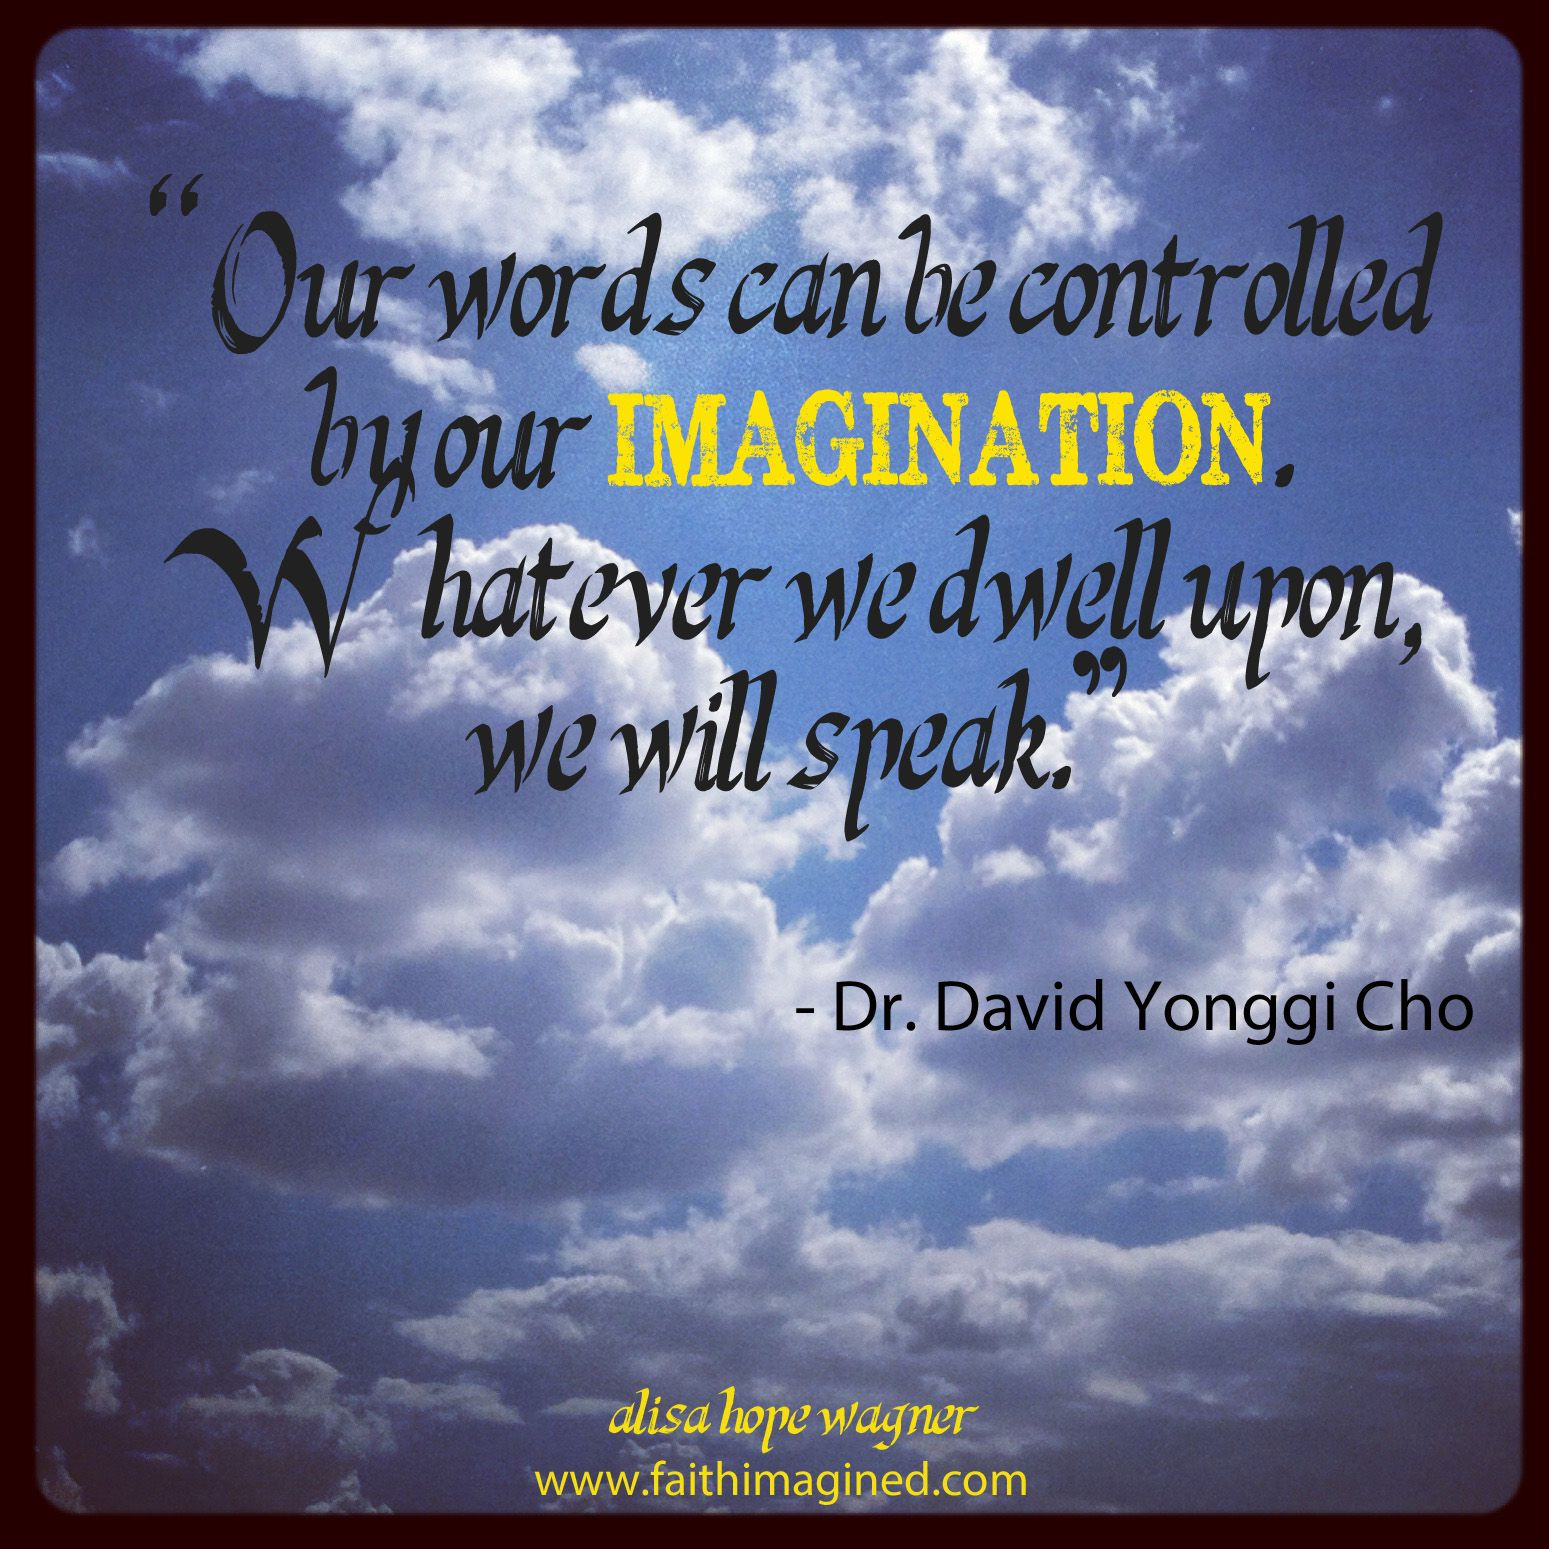 """""""Our words can be controlled by our imagination. Whatever we dwell upon, we will speak."""" – Dr. David Yonggi Cho: The Fourth Dimension Volume 2"""